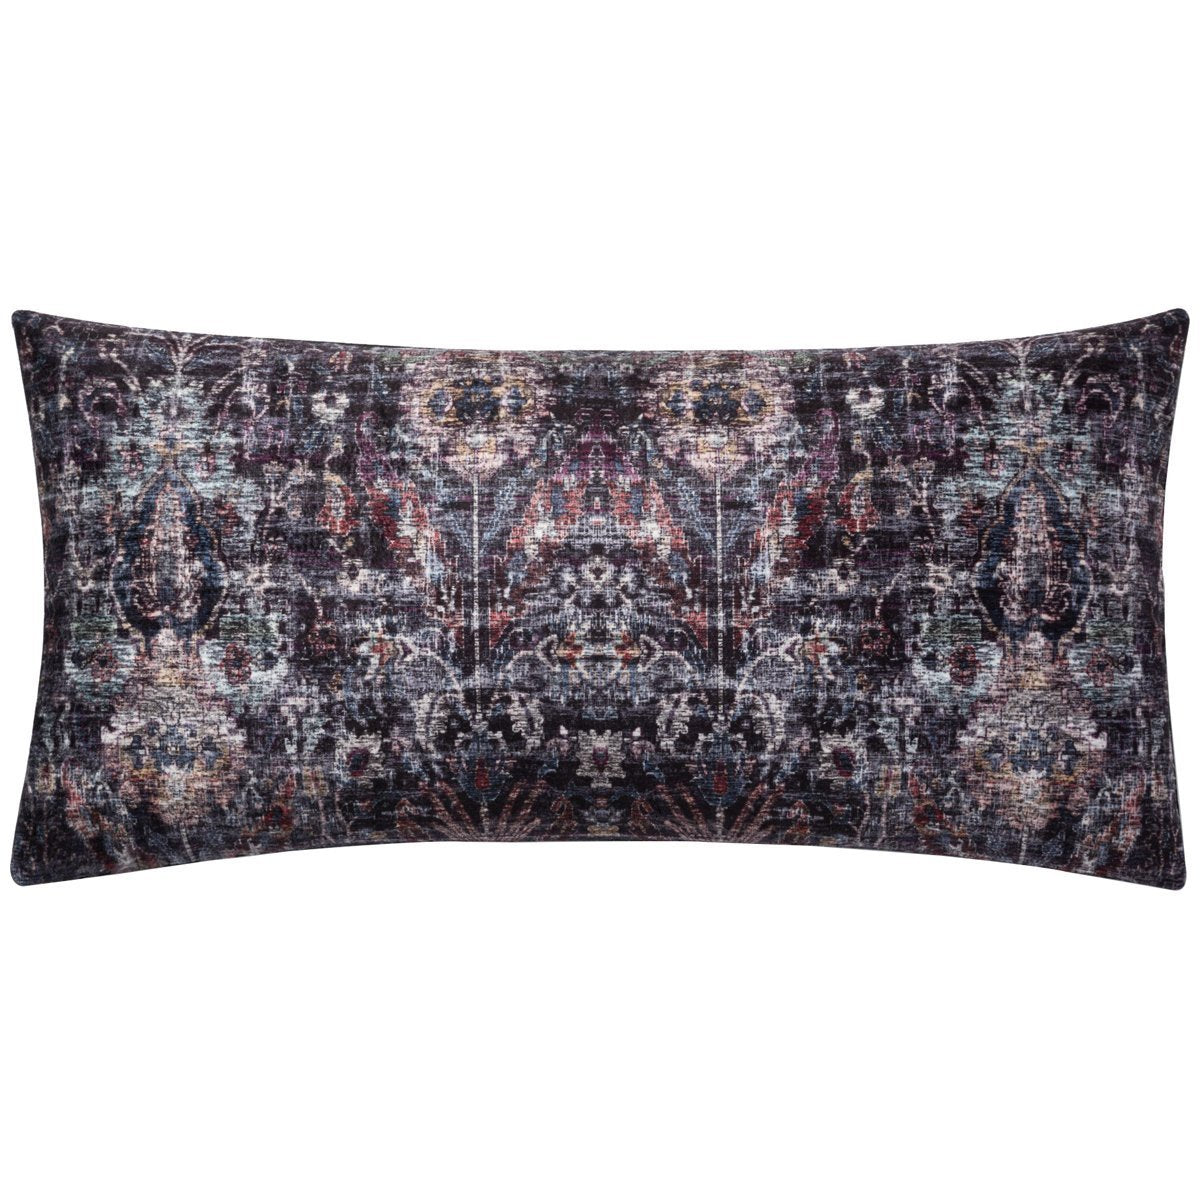 Loloi P0686 Multi Pillow Set of 2